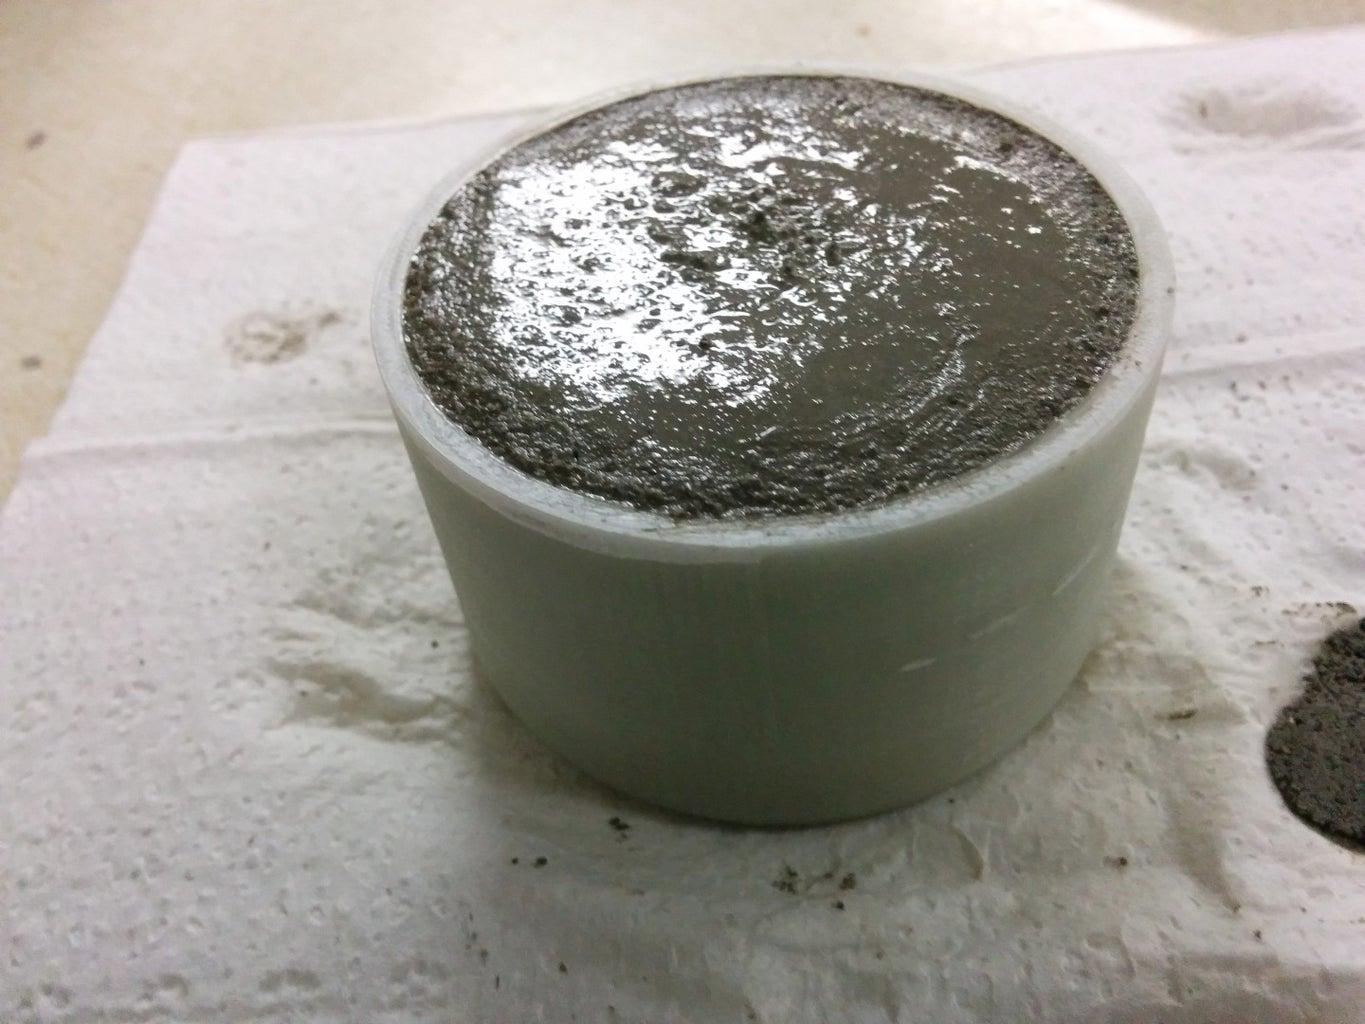 Mold Release and Poring